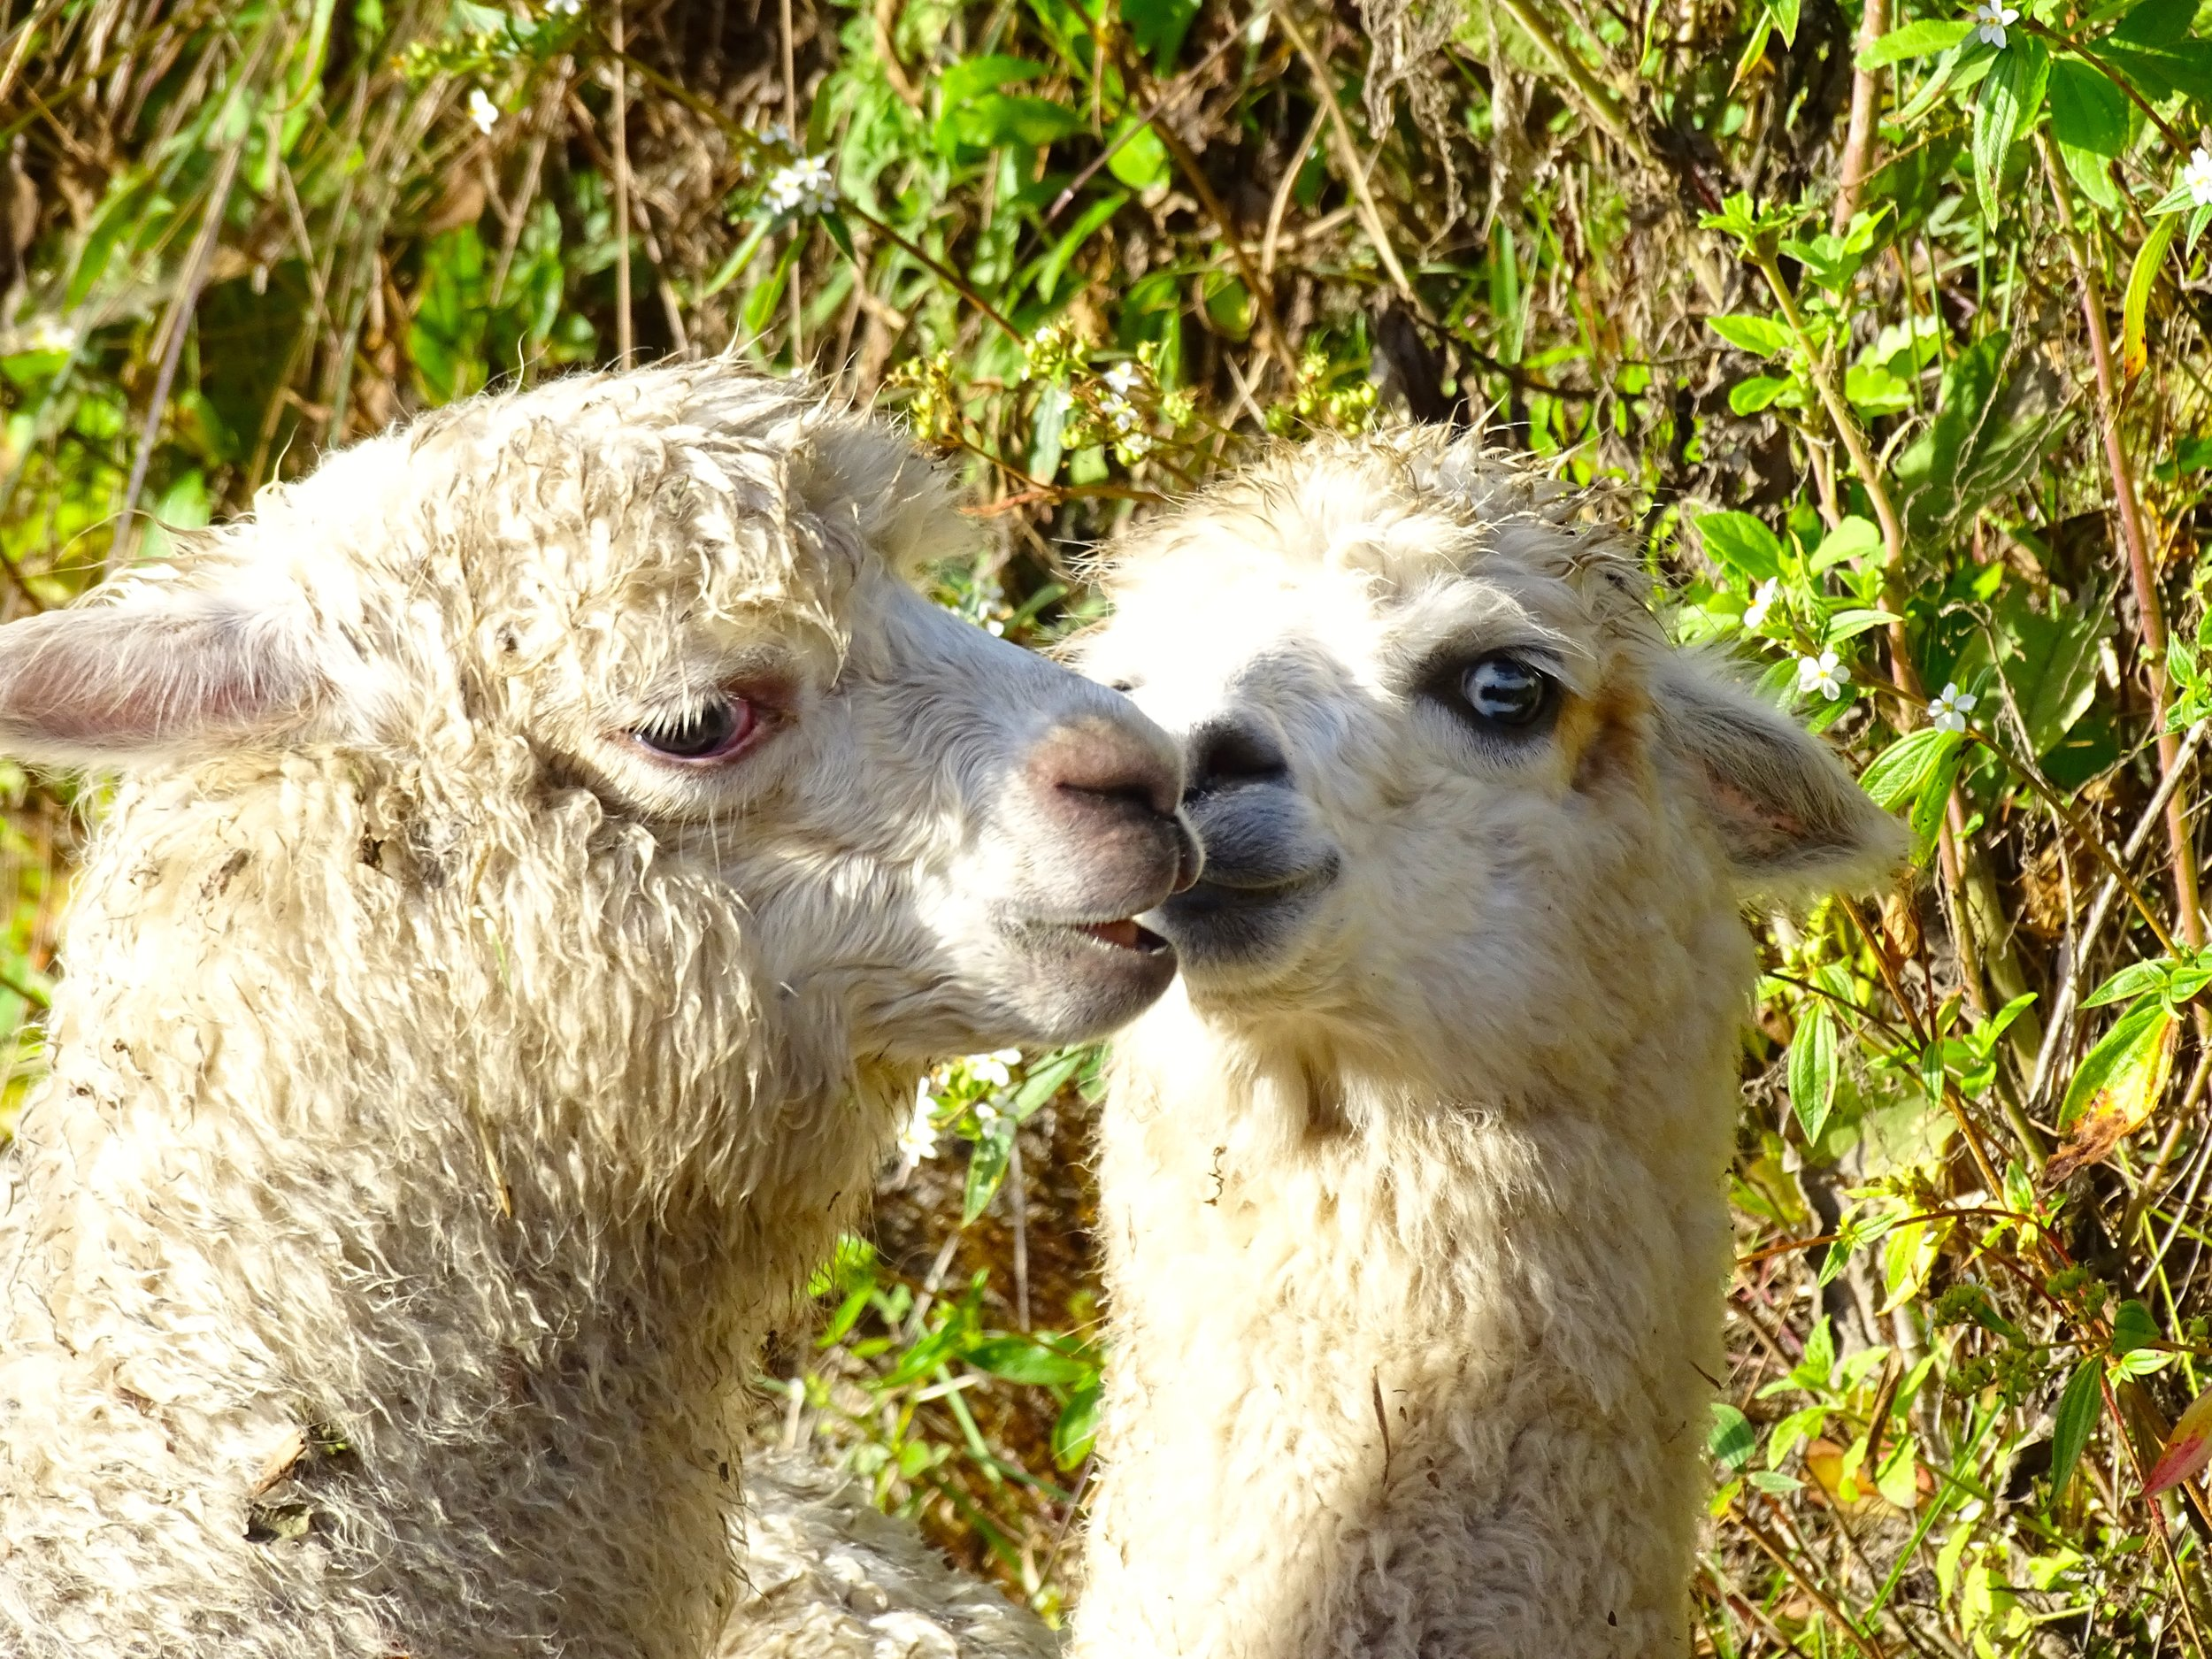 Little alpacas having a fun time of it.